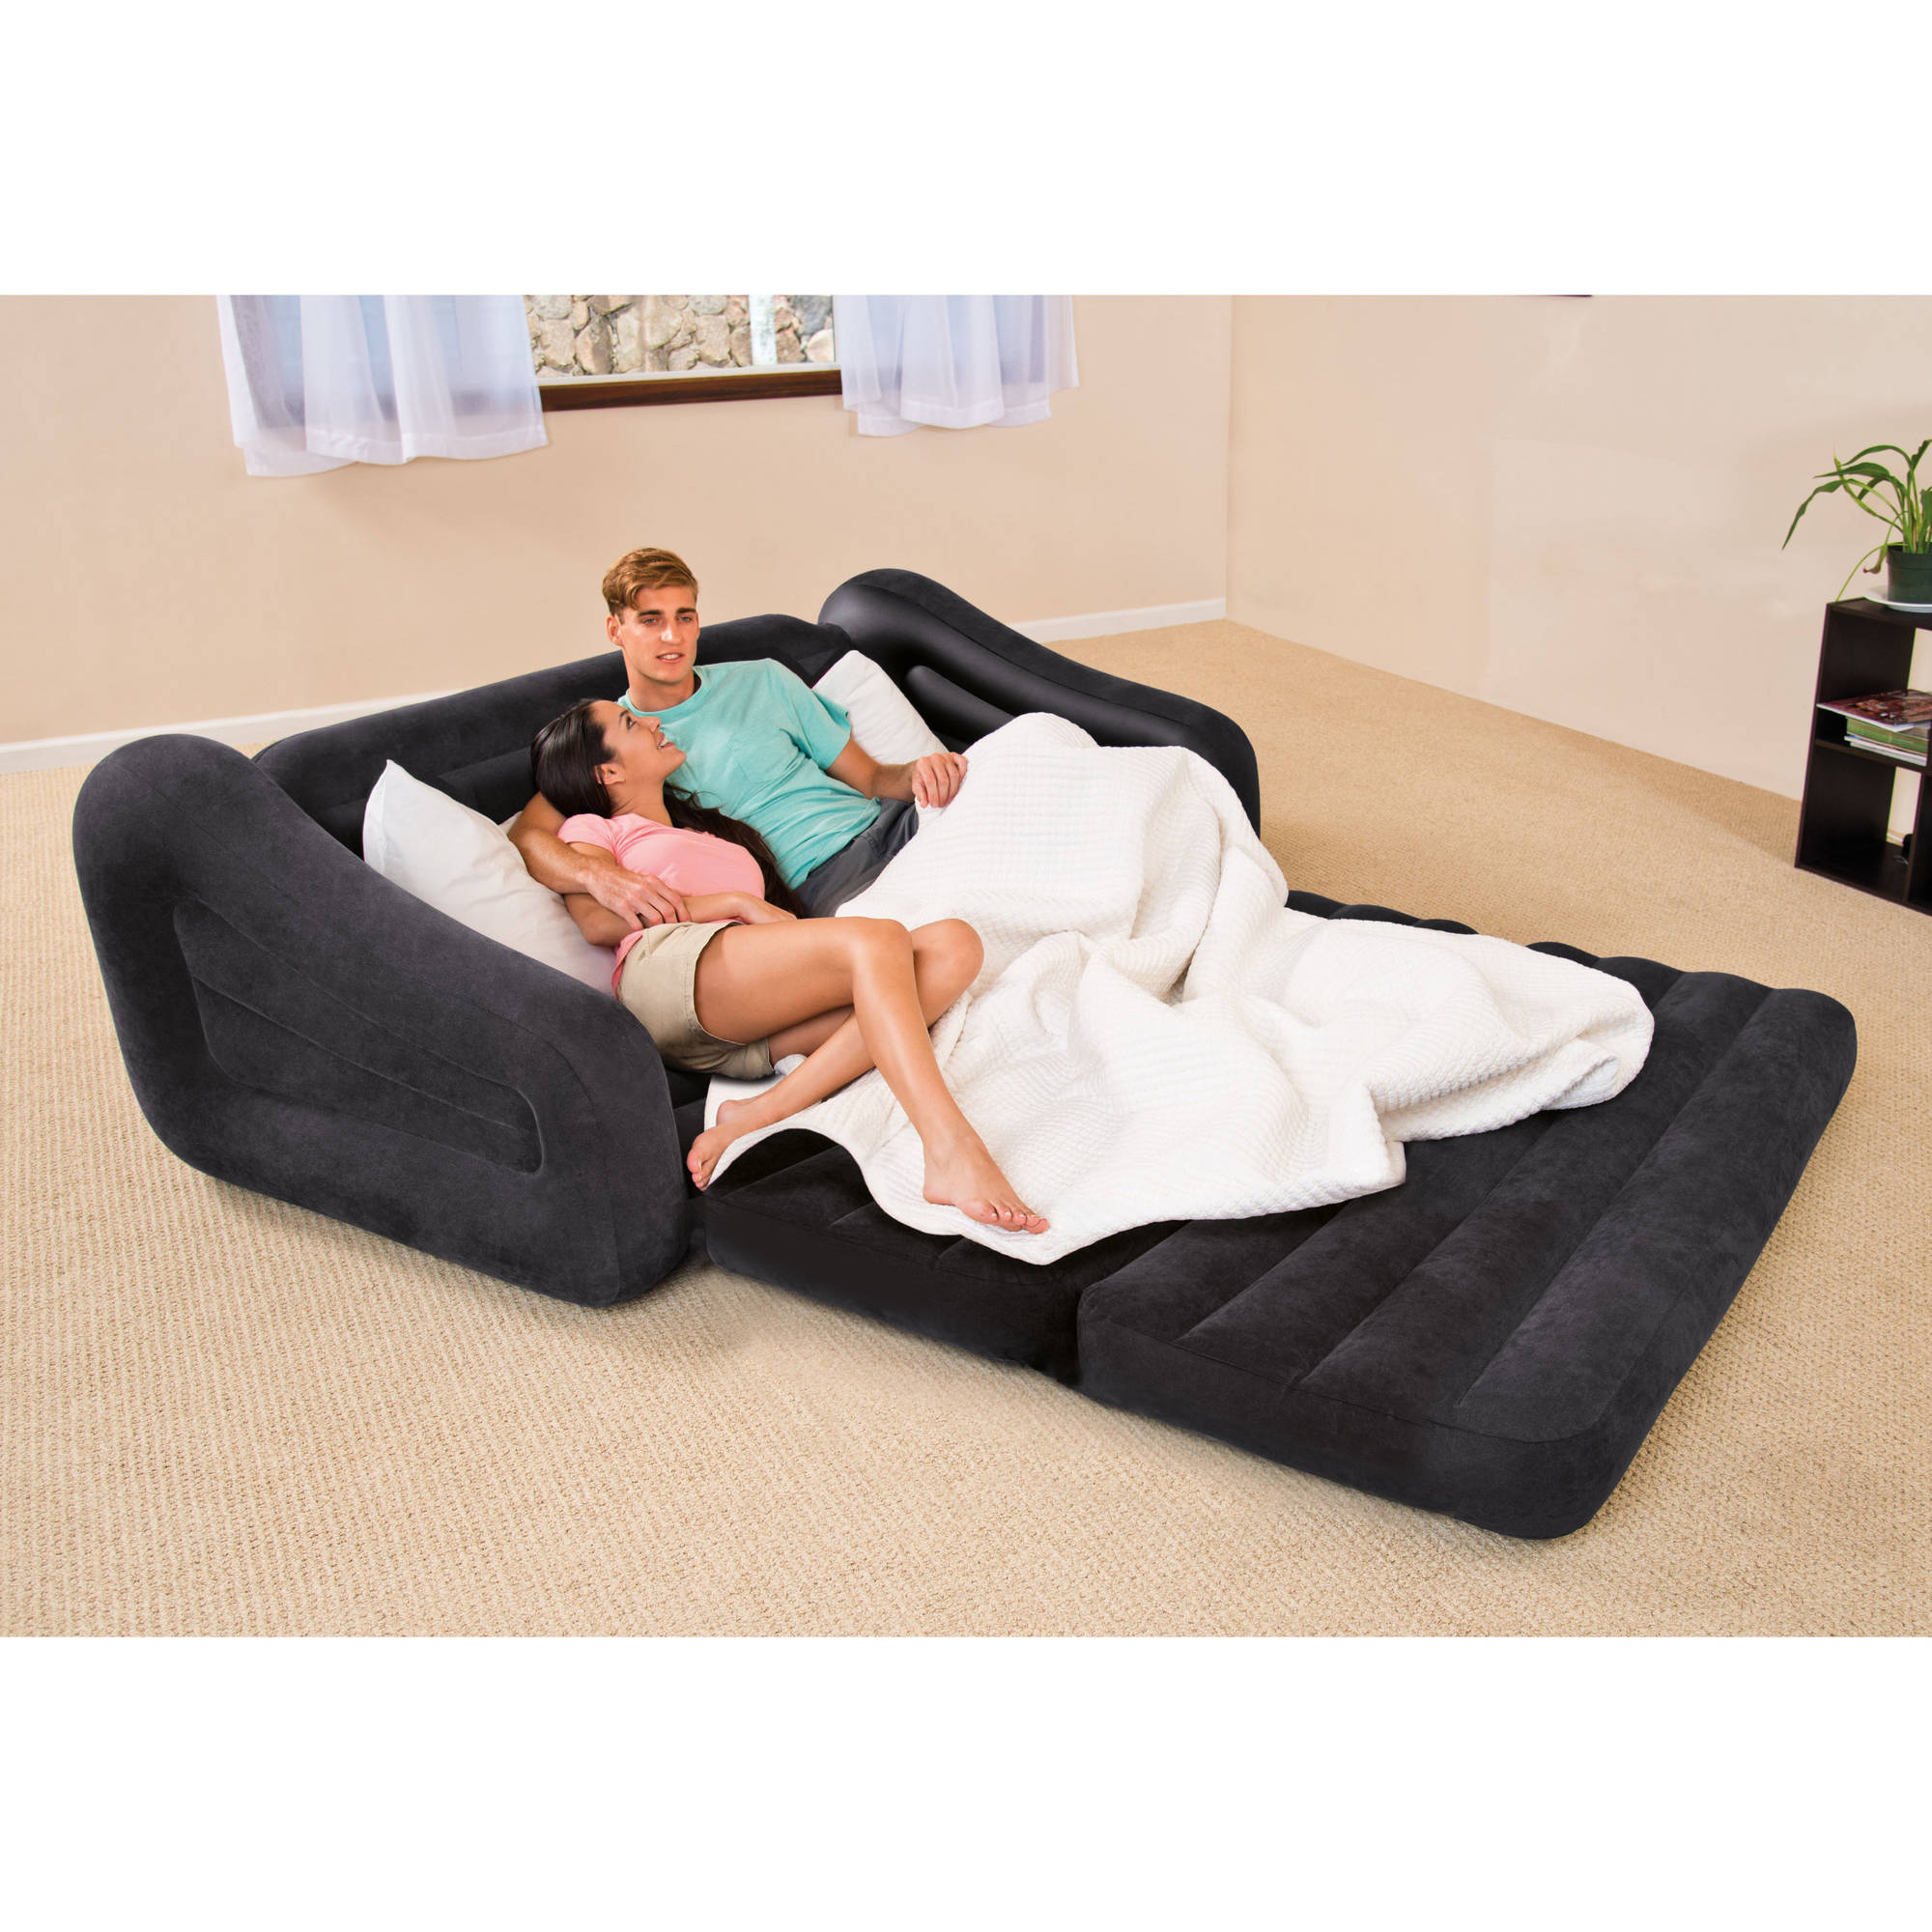 Intex Queen Inflatable Pull-Out Sofa Bed